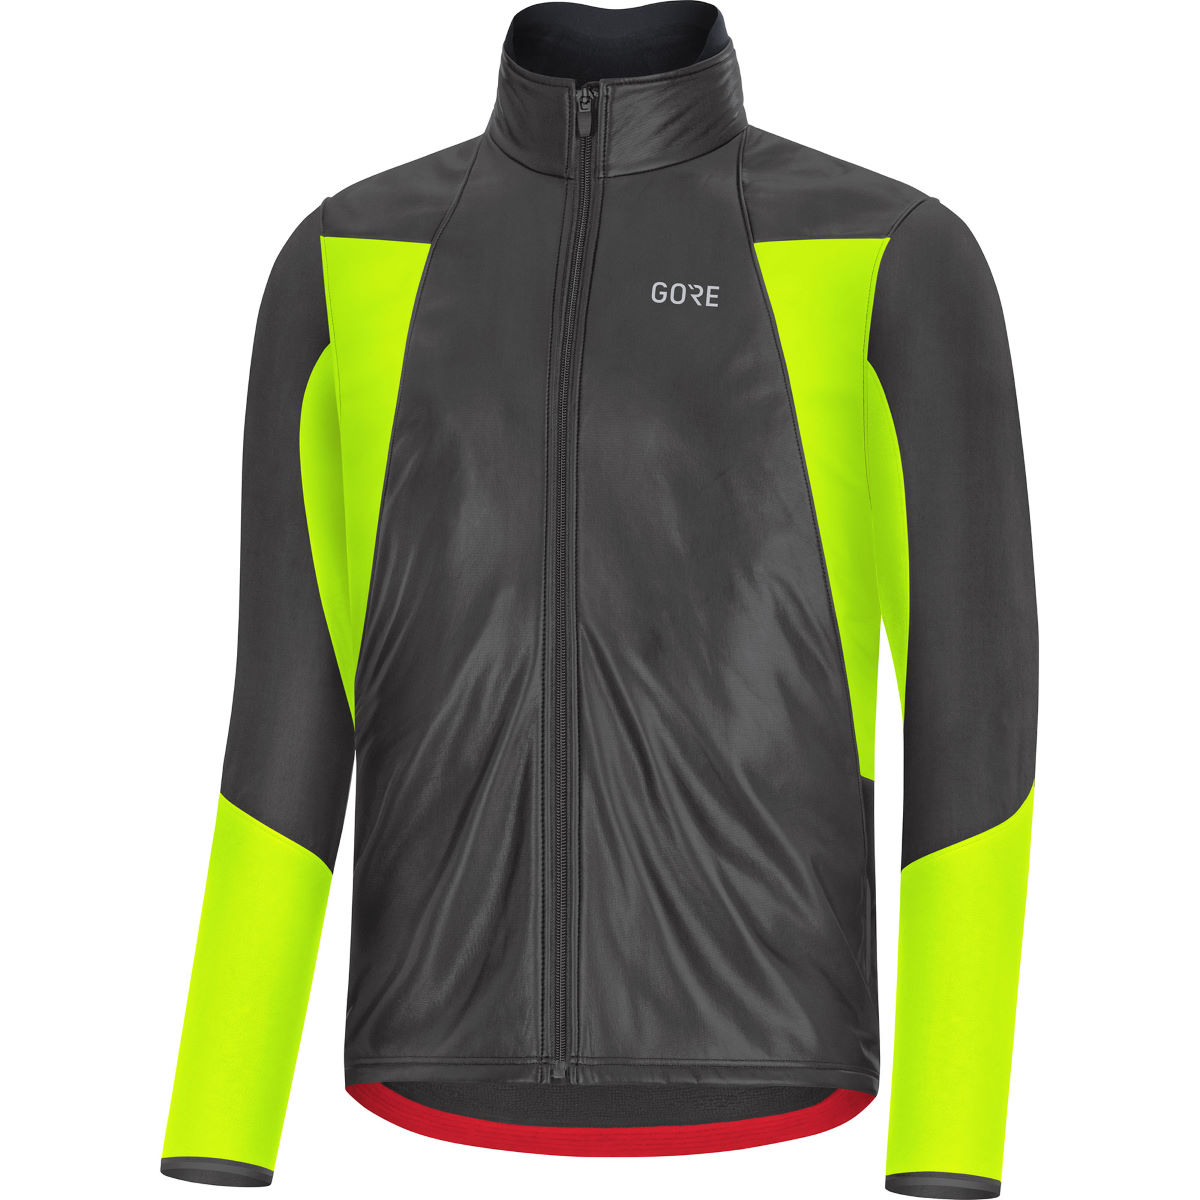 Gore Wear Gore Wear C5 GORE-TEX INFINIUM Soft Lined Thermo Jacket   Jackets